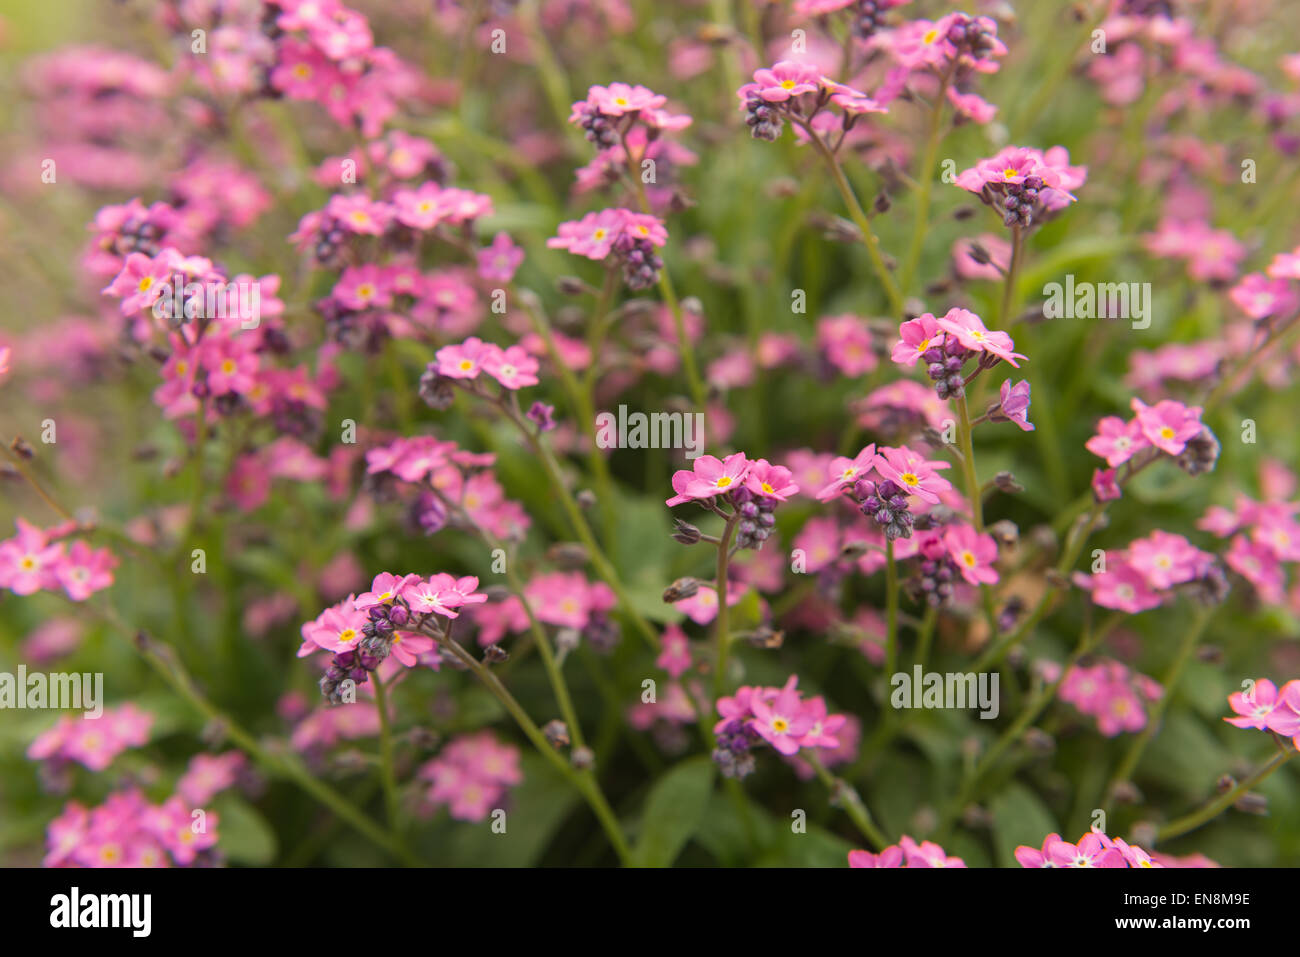 Single Bunch Of Blooms Of Candy Pink Forget Me Not Flowers Against A